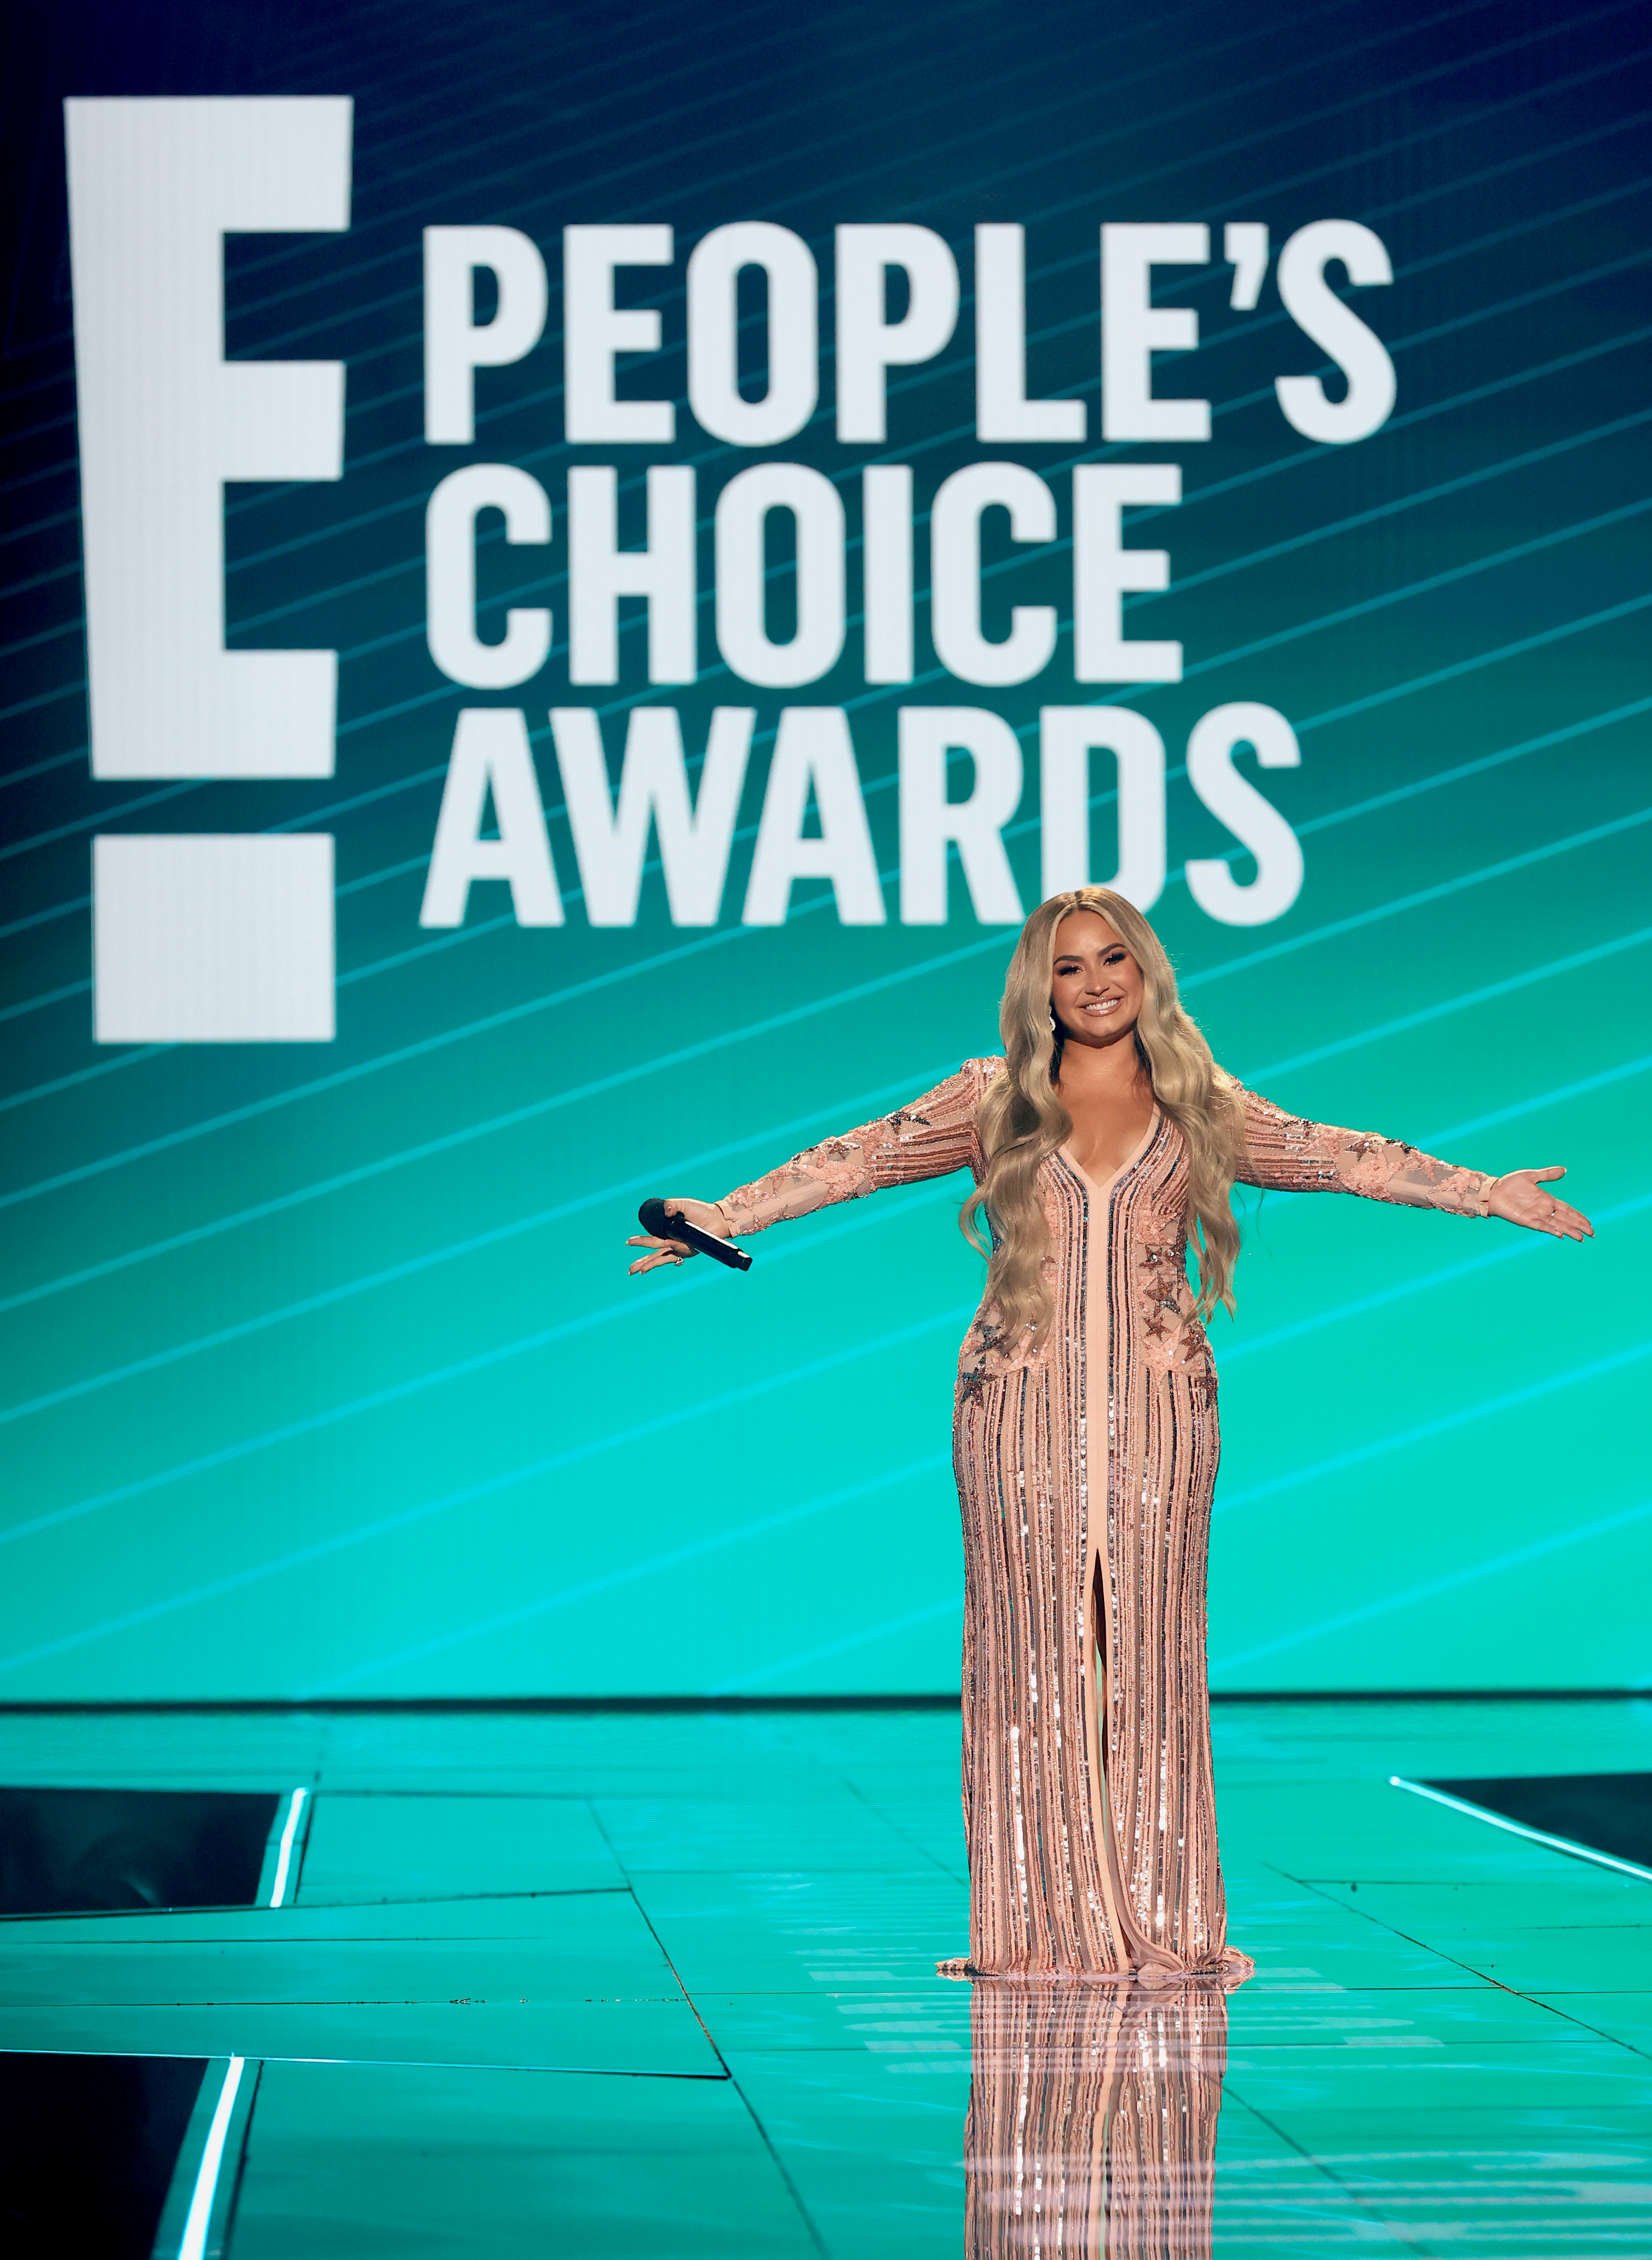 Demi Lovato at an event for The E! People's Choice Awards (2020)